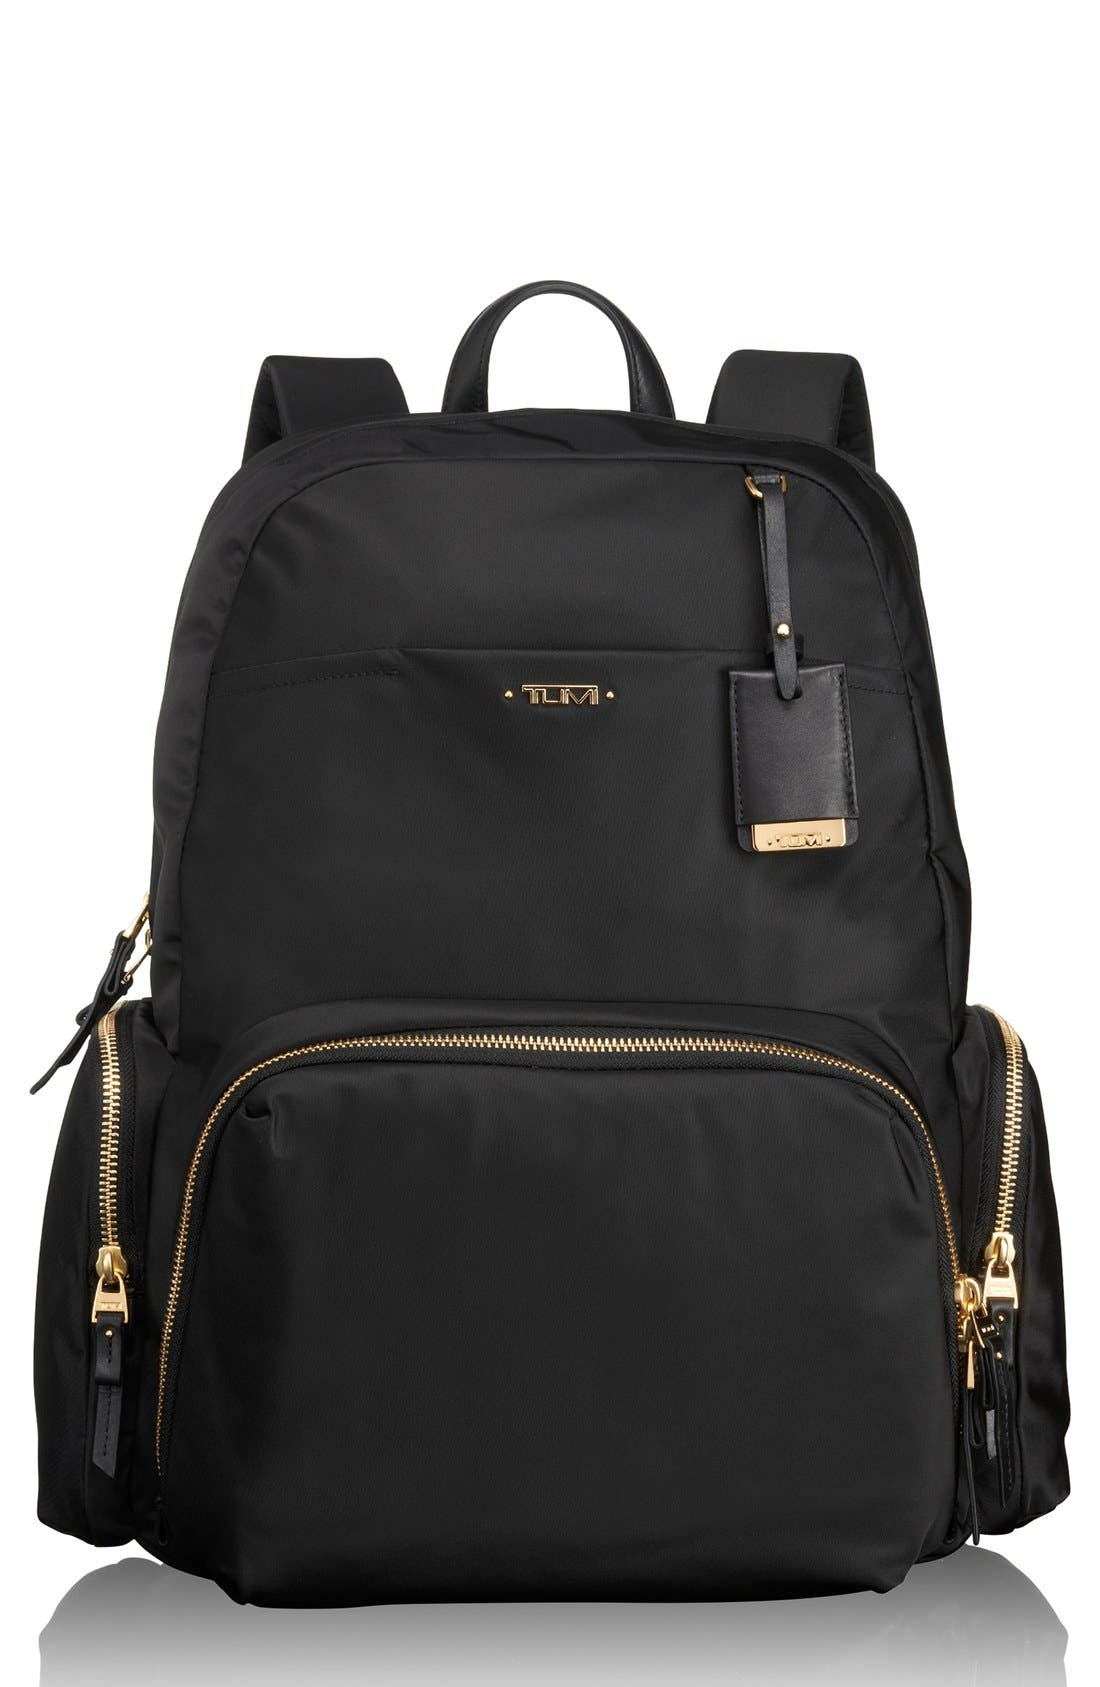 Tumi Calais Nylon 15 Inch Computer Commuter Backpack